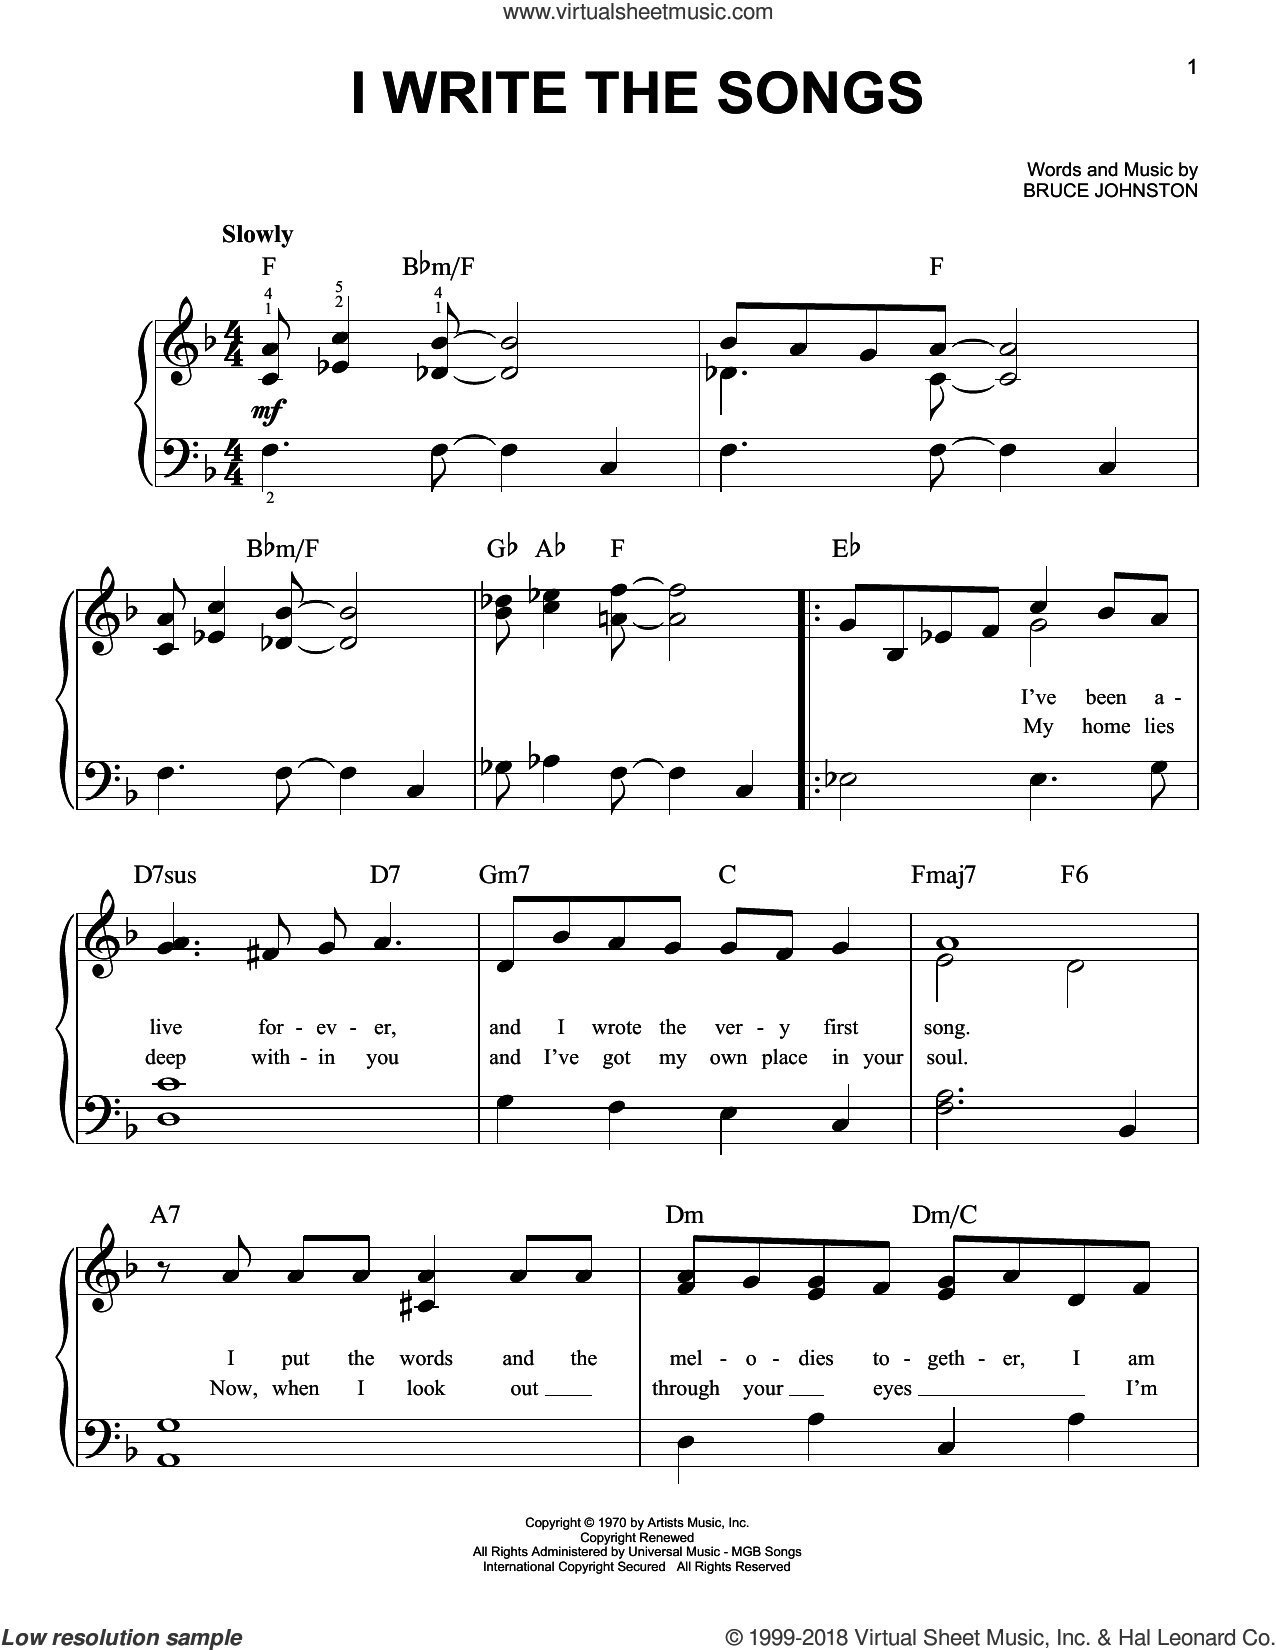 I Write The Songs sheet music for piano solo by Bruce Johnston